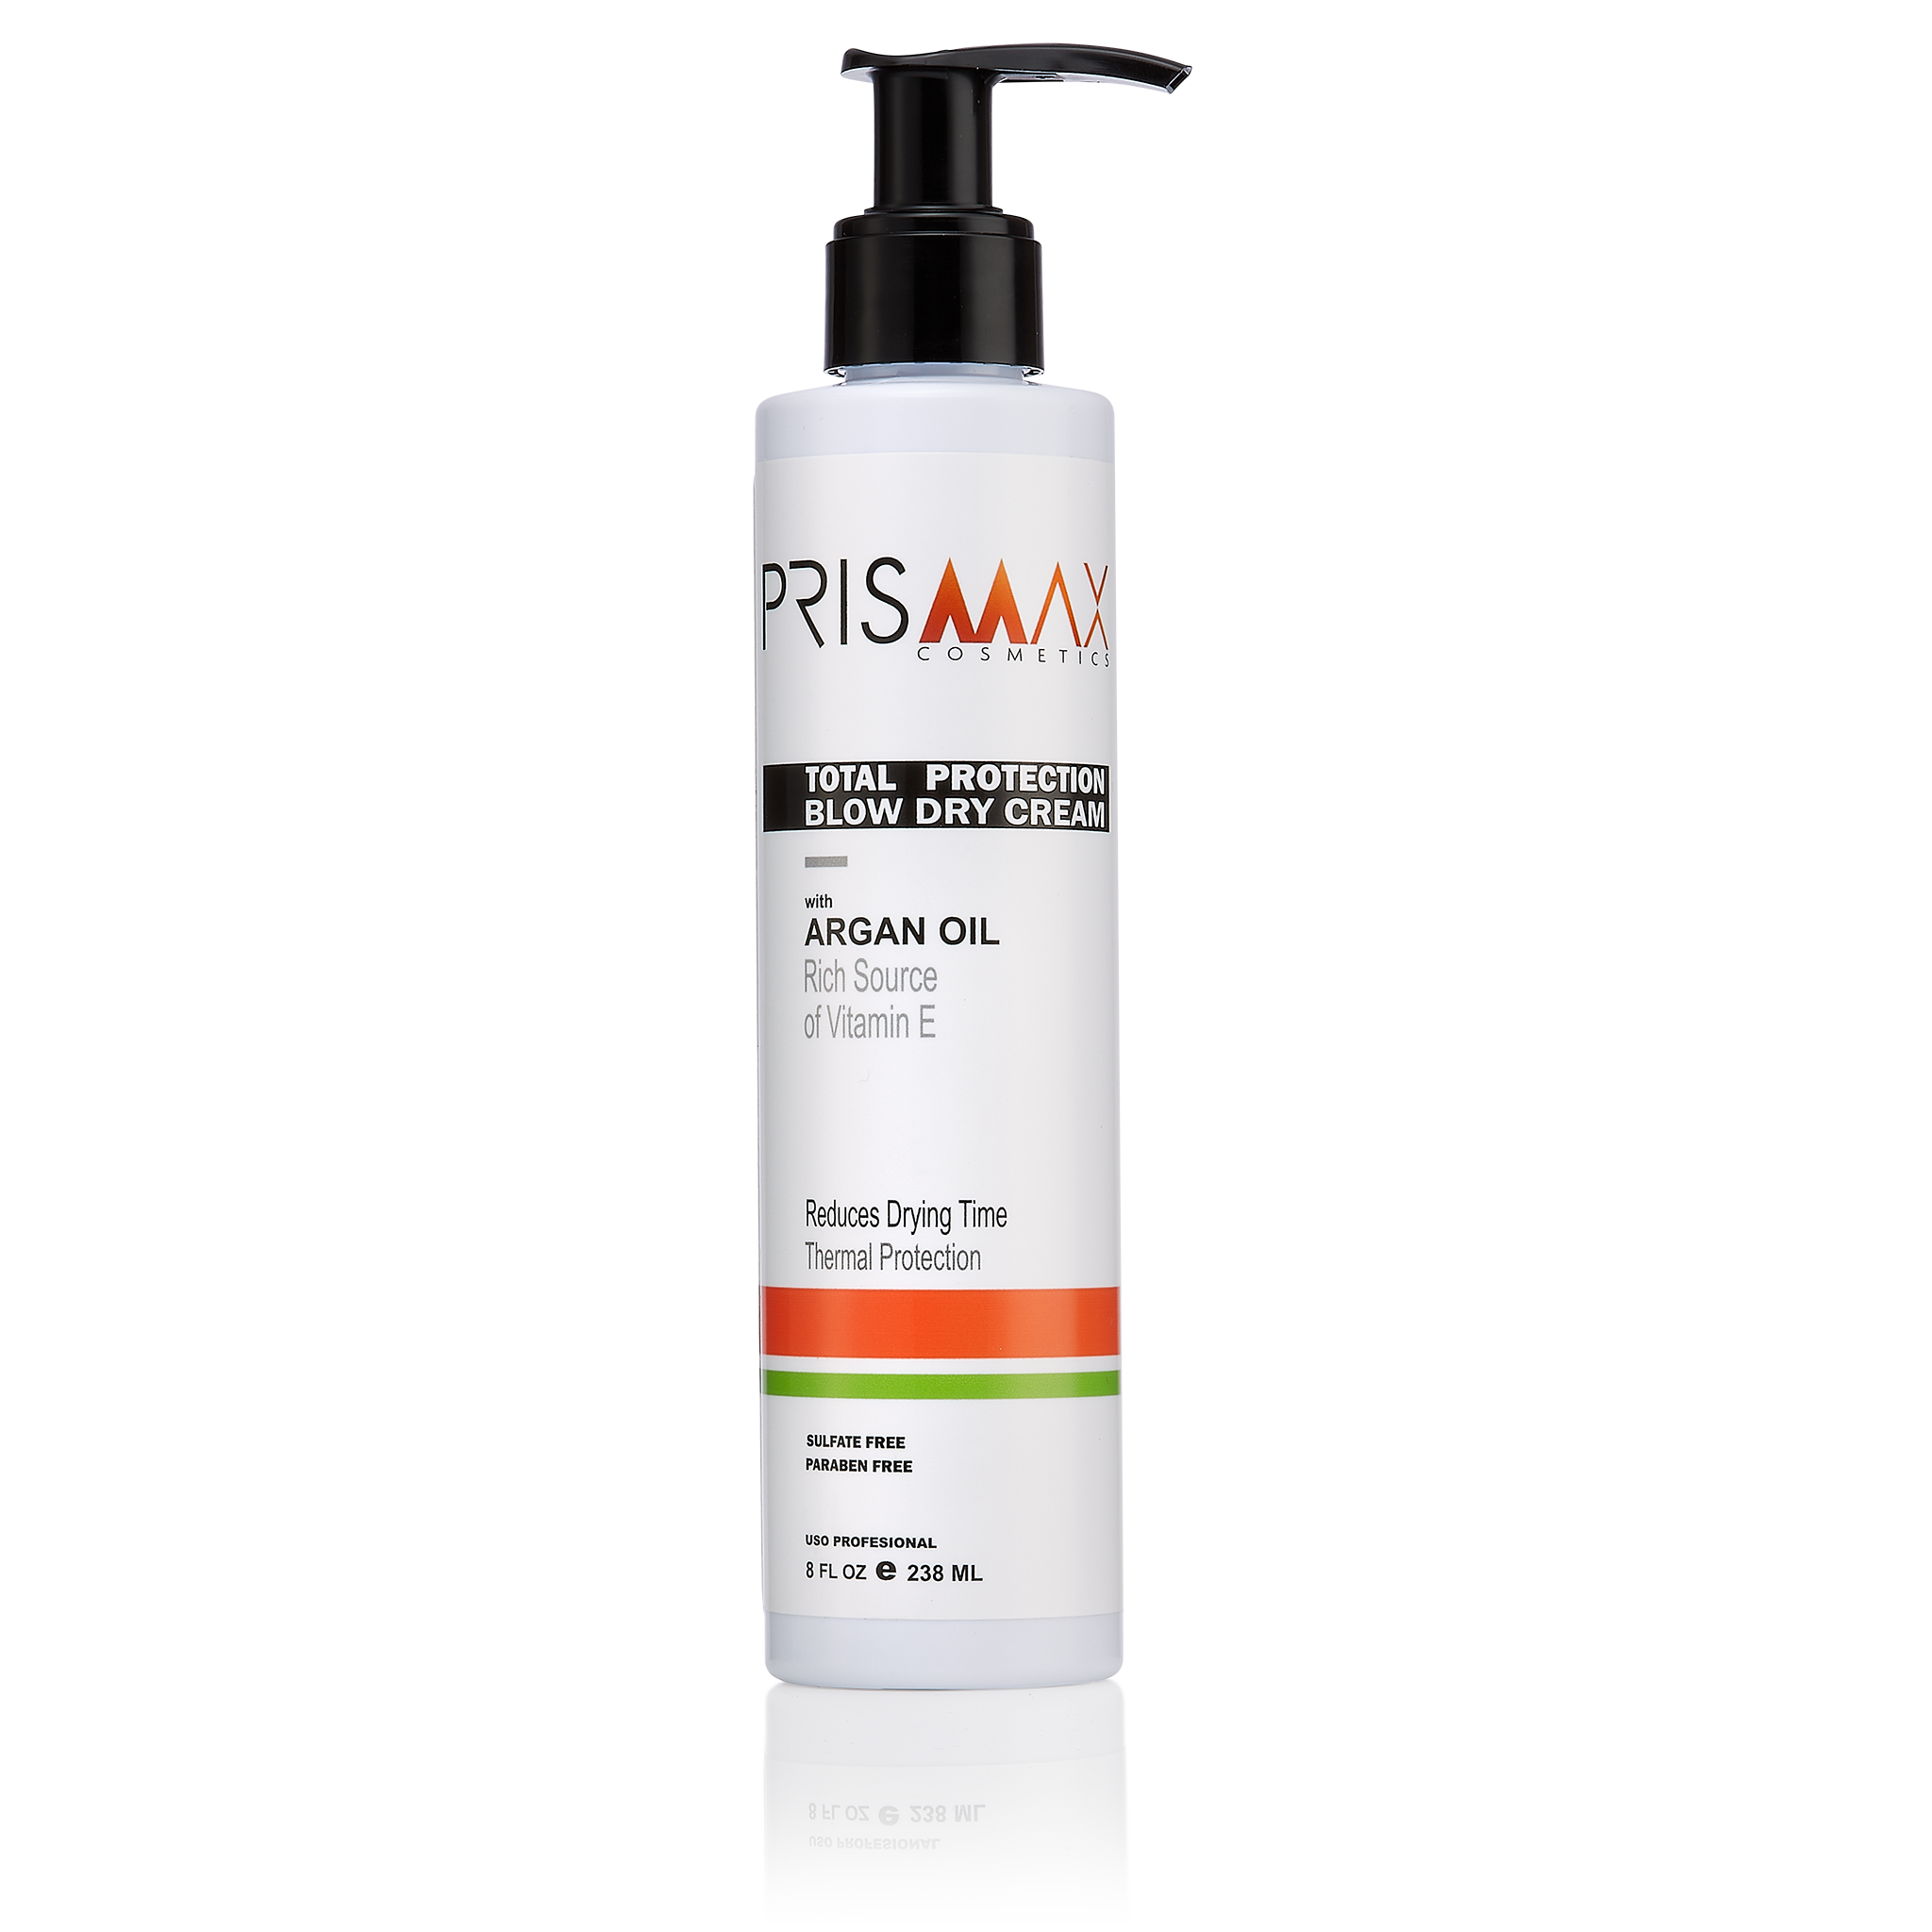 Prismax Leave-In Conditioner